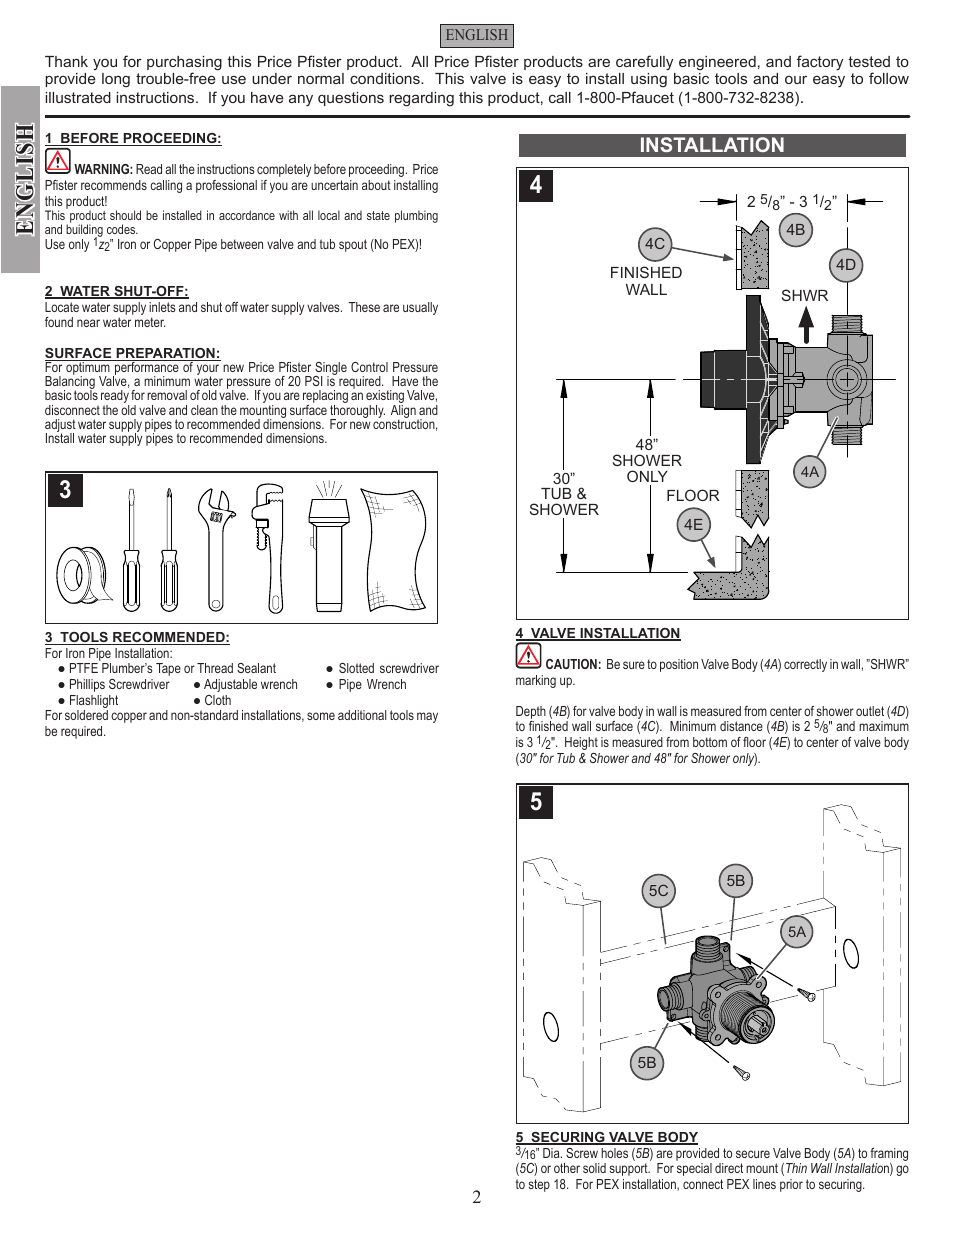 Price Pfister 0x8 Shower Valve Diagram - Circuit Connection Diagram •